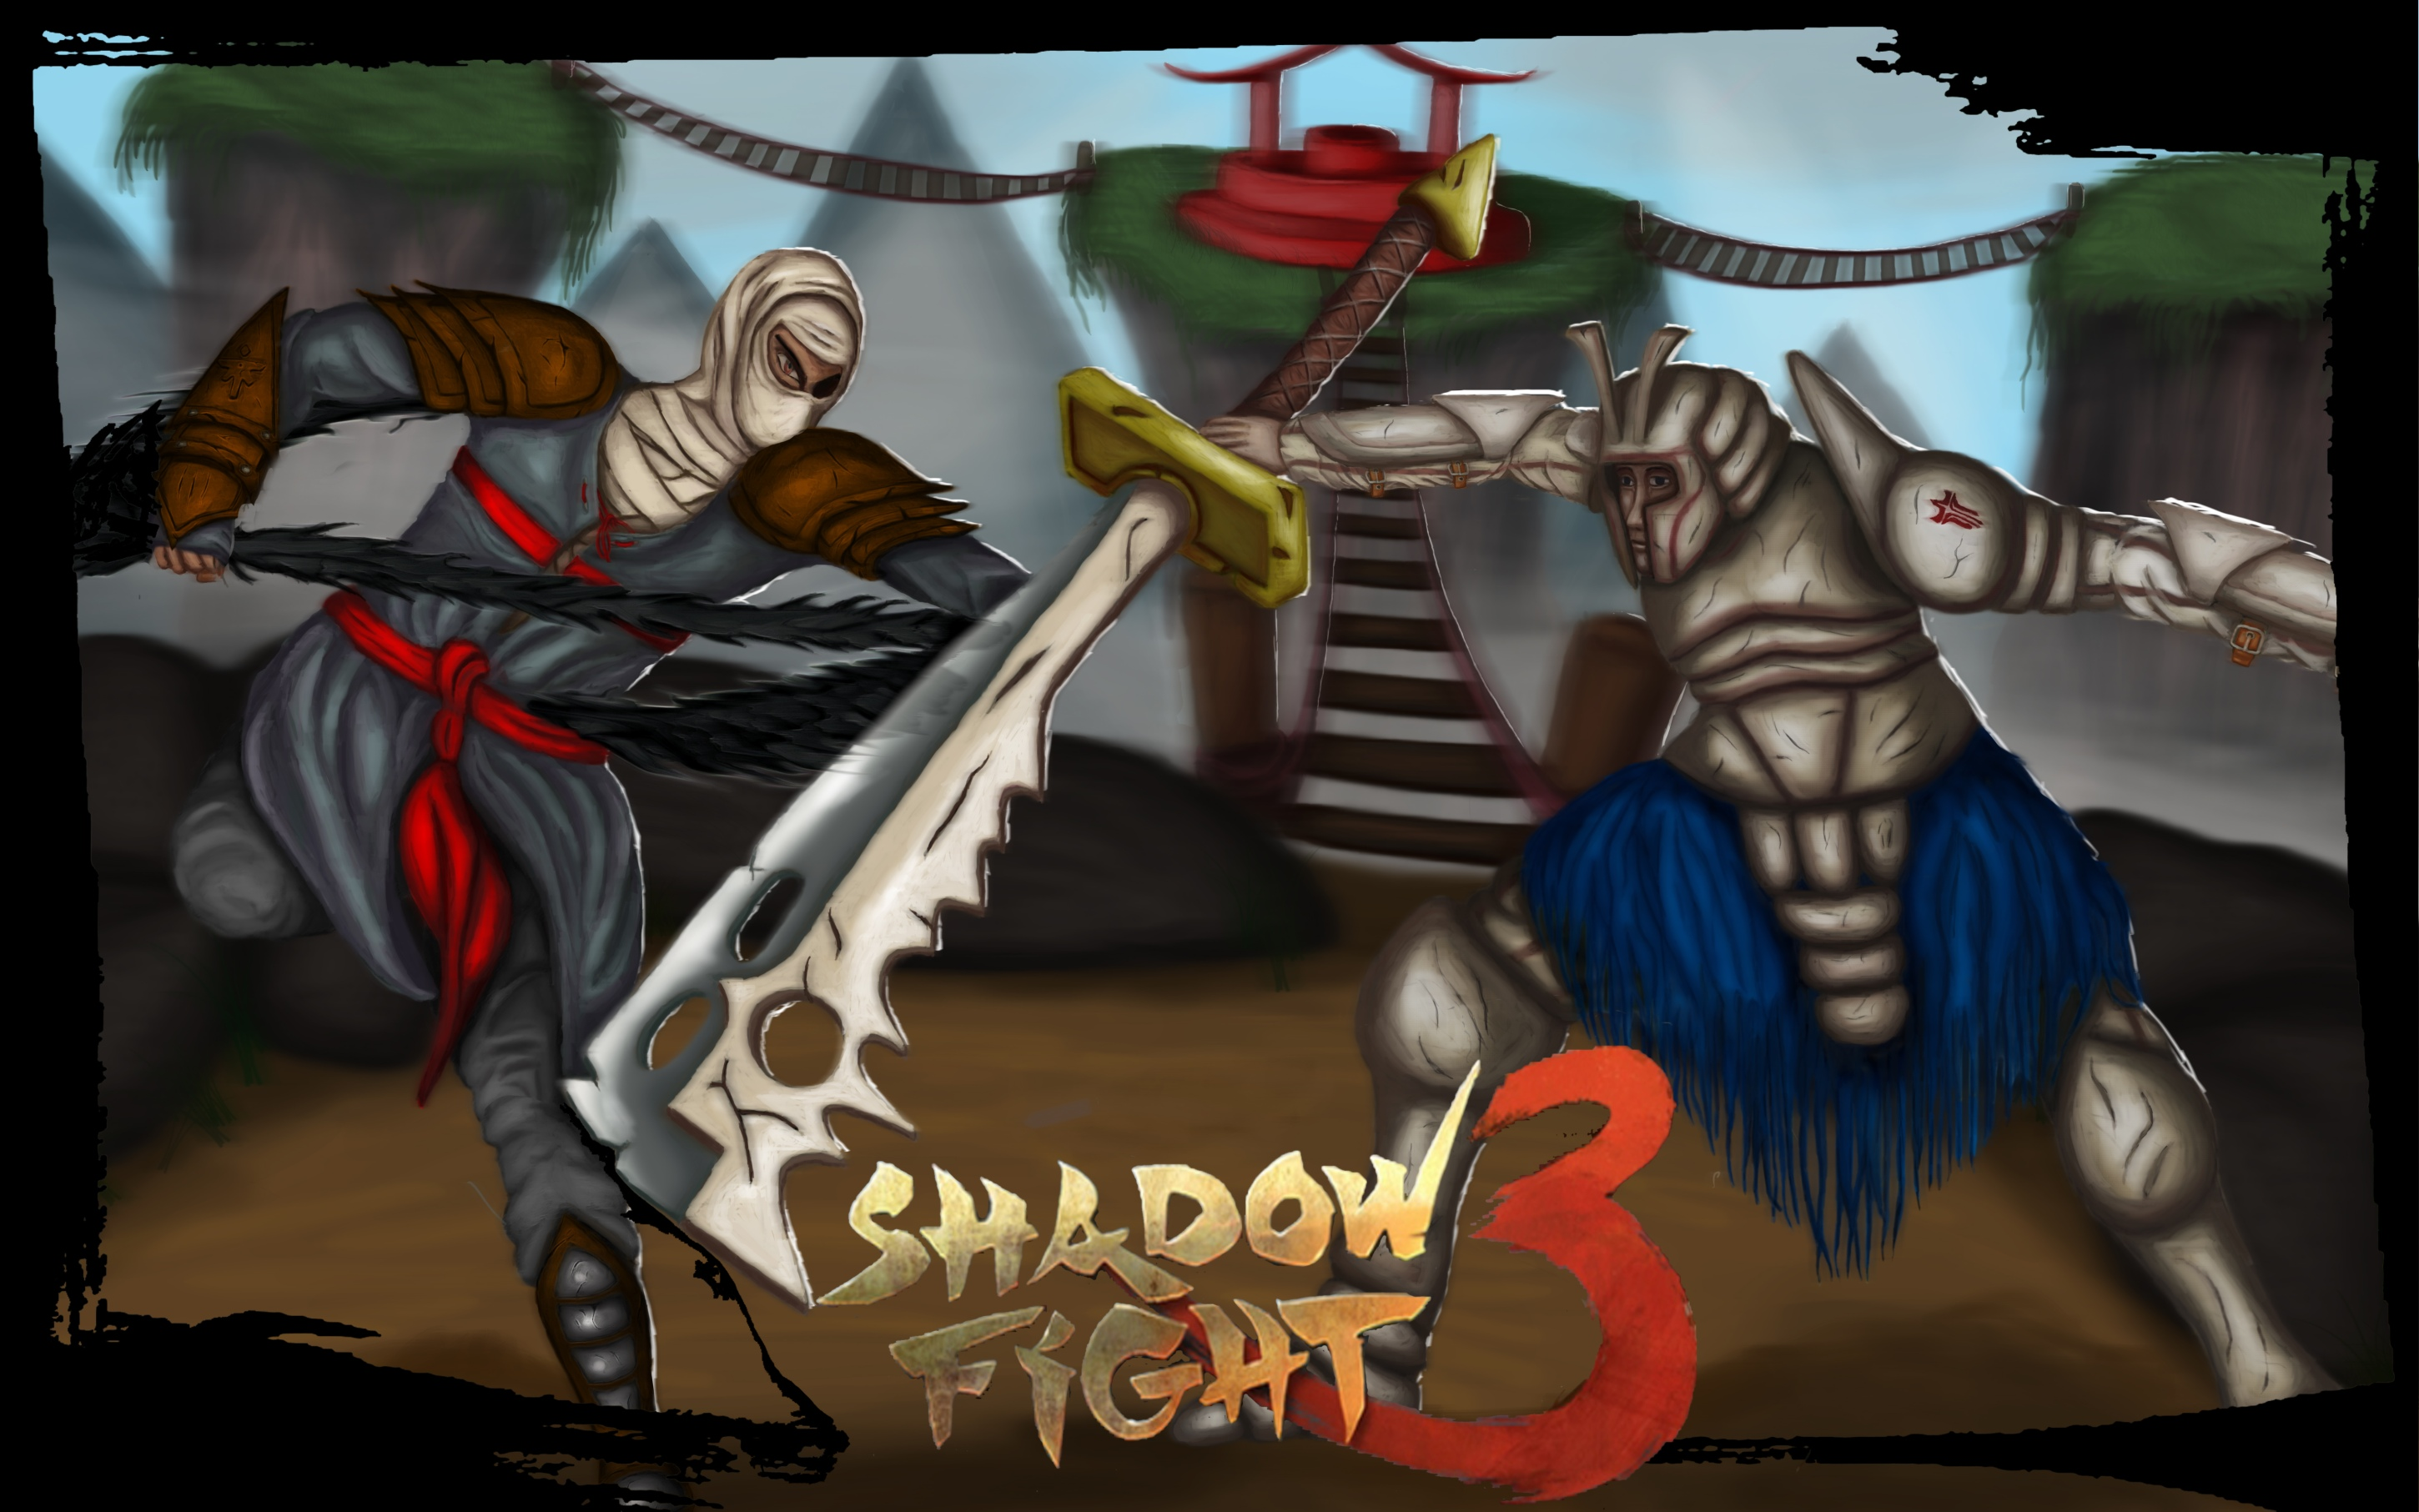 shadowfight3_3_low.jpg